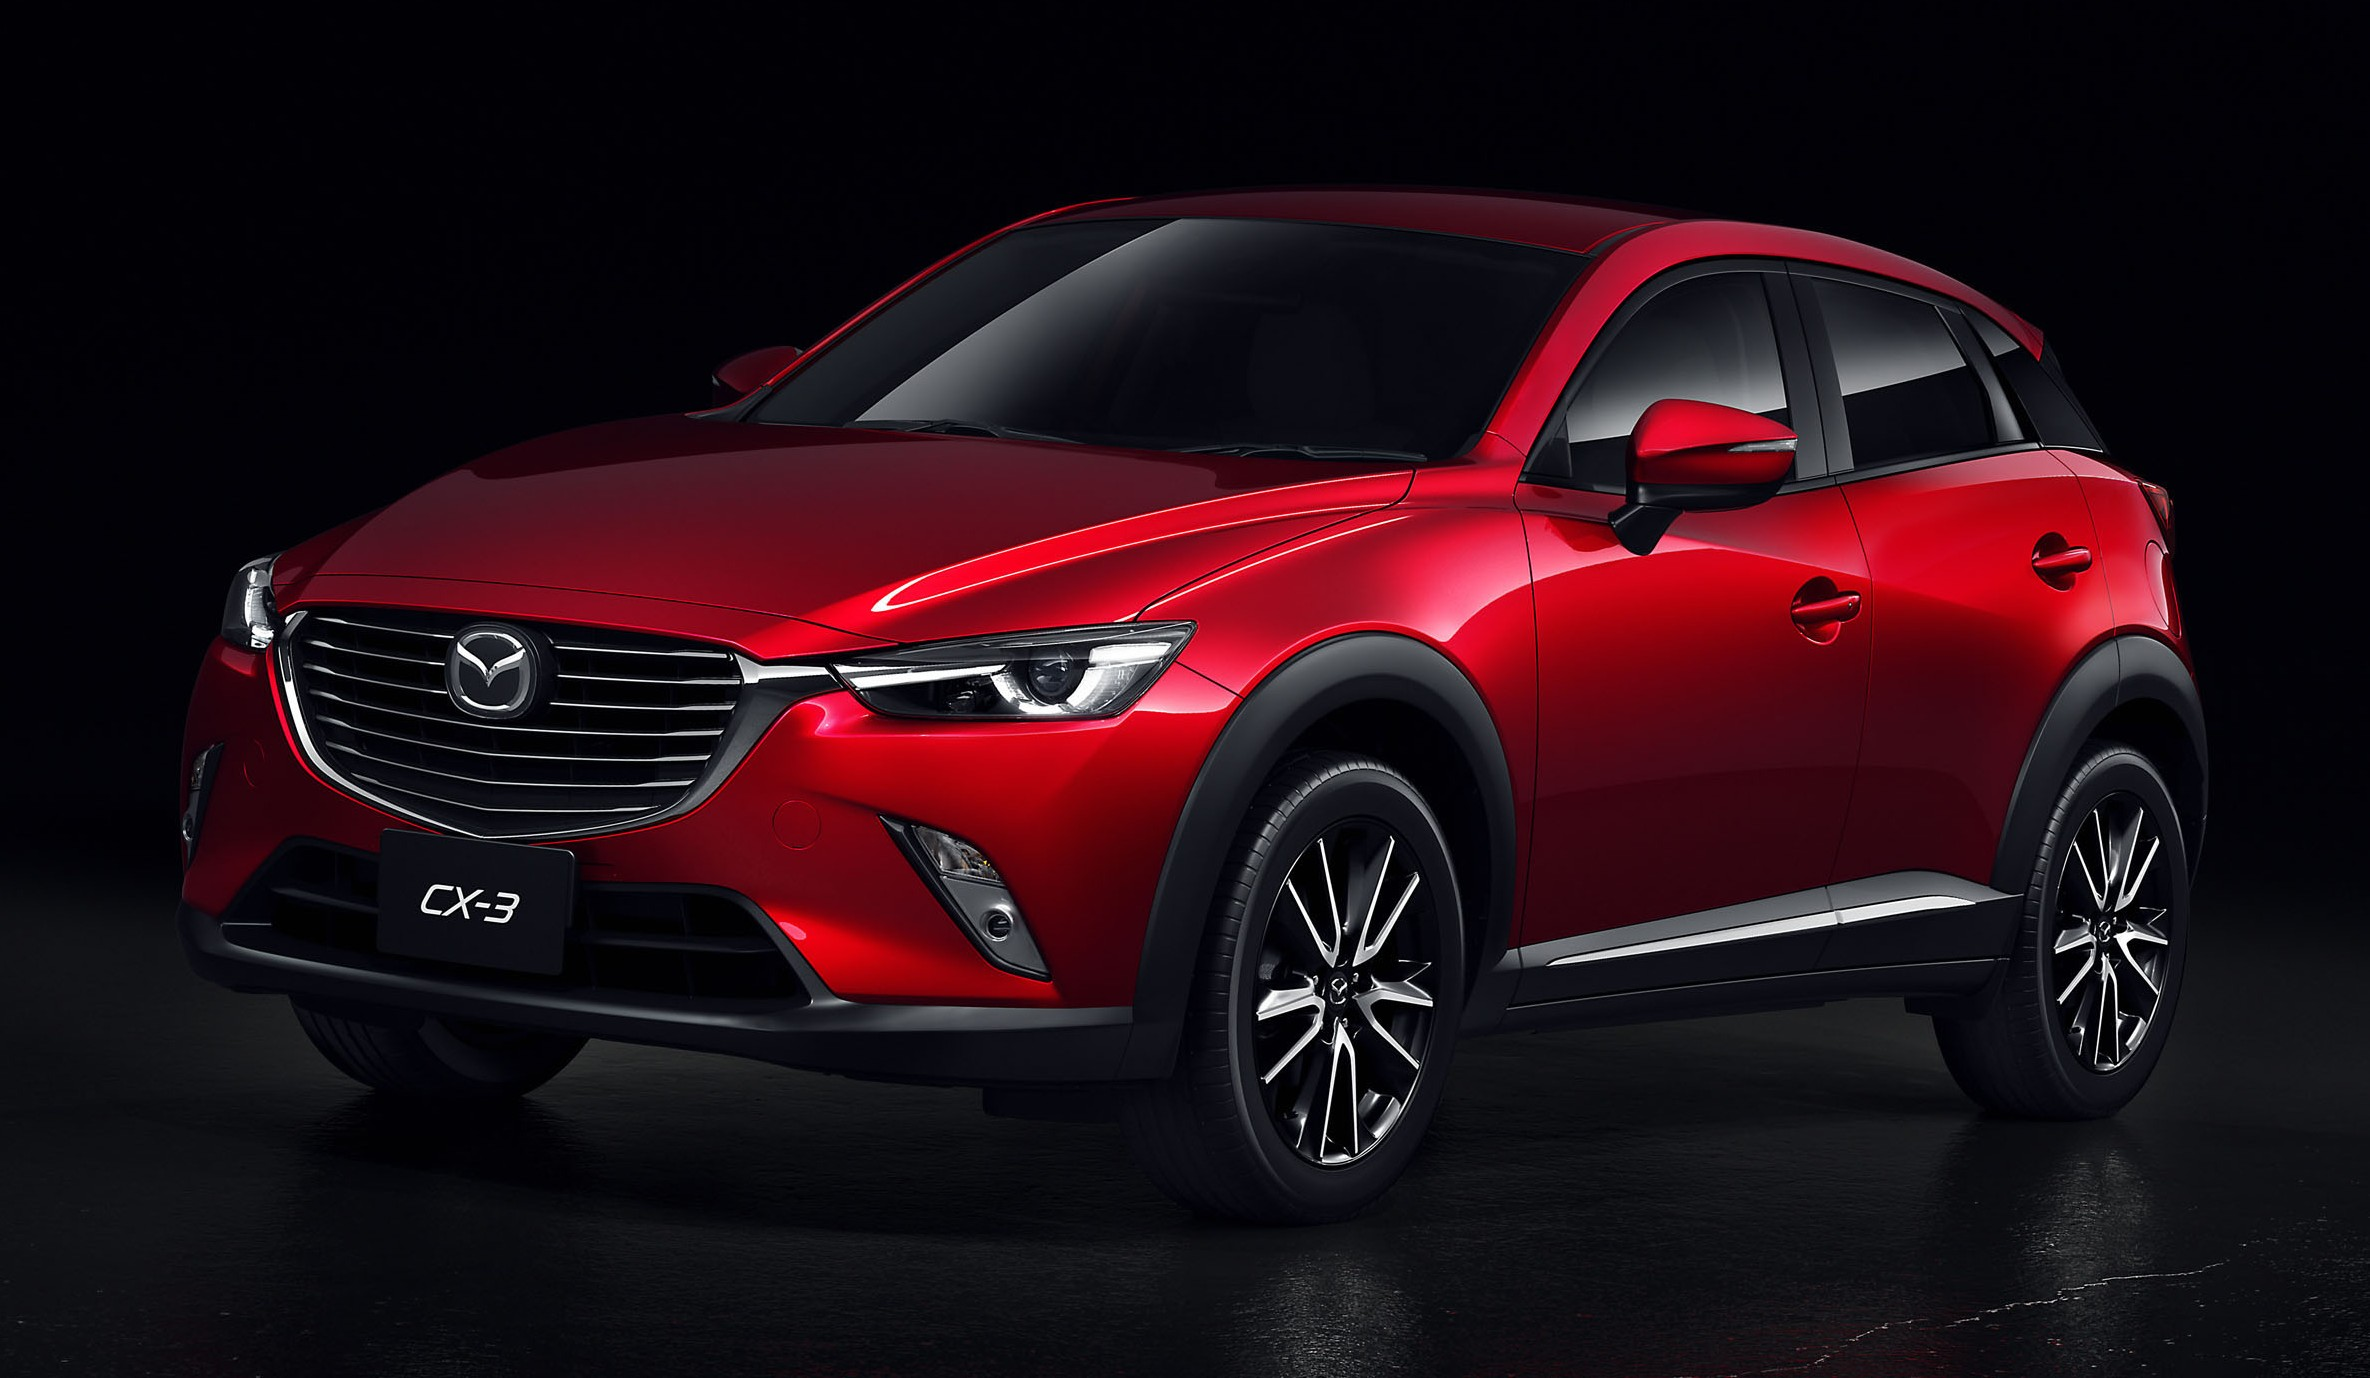 Mazda Cx 3 New B Segment Suv Officially Unveiled Image